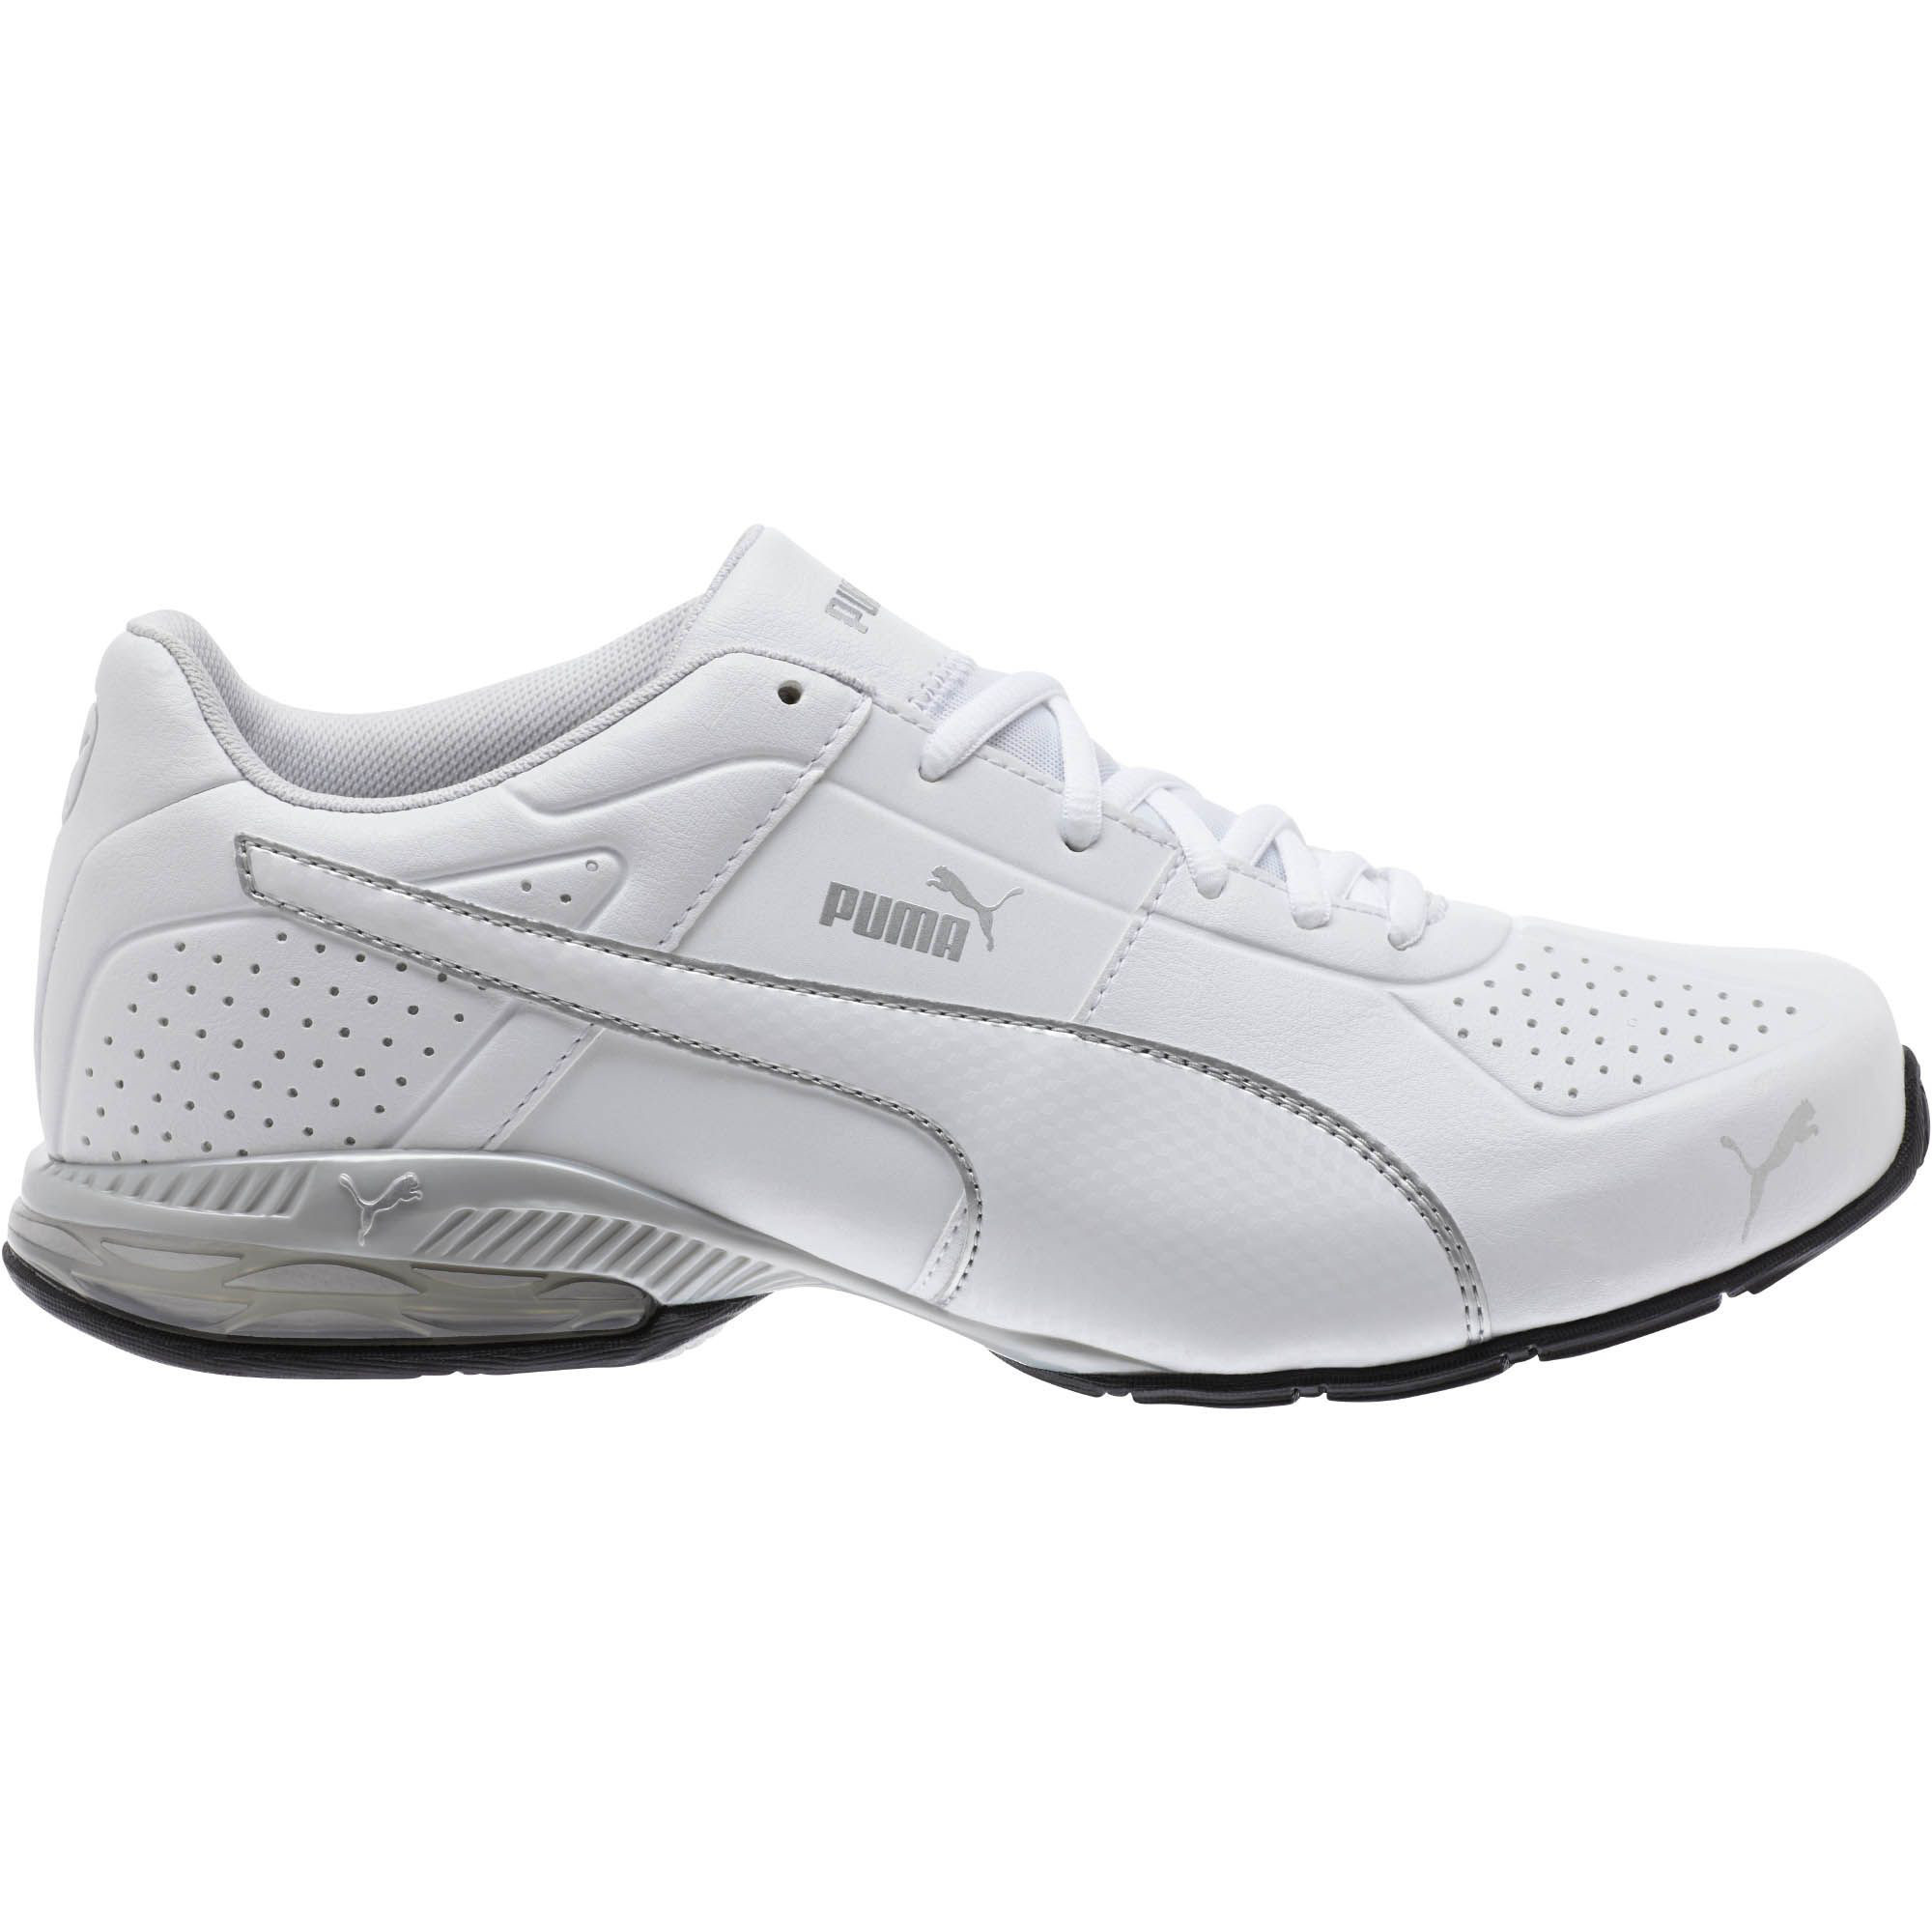 PUMA-Men-039-s-CELL-Surin-2-FM-Running-Shoes thumbnail 12